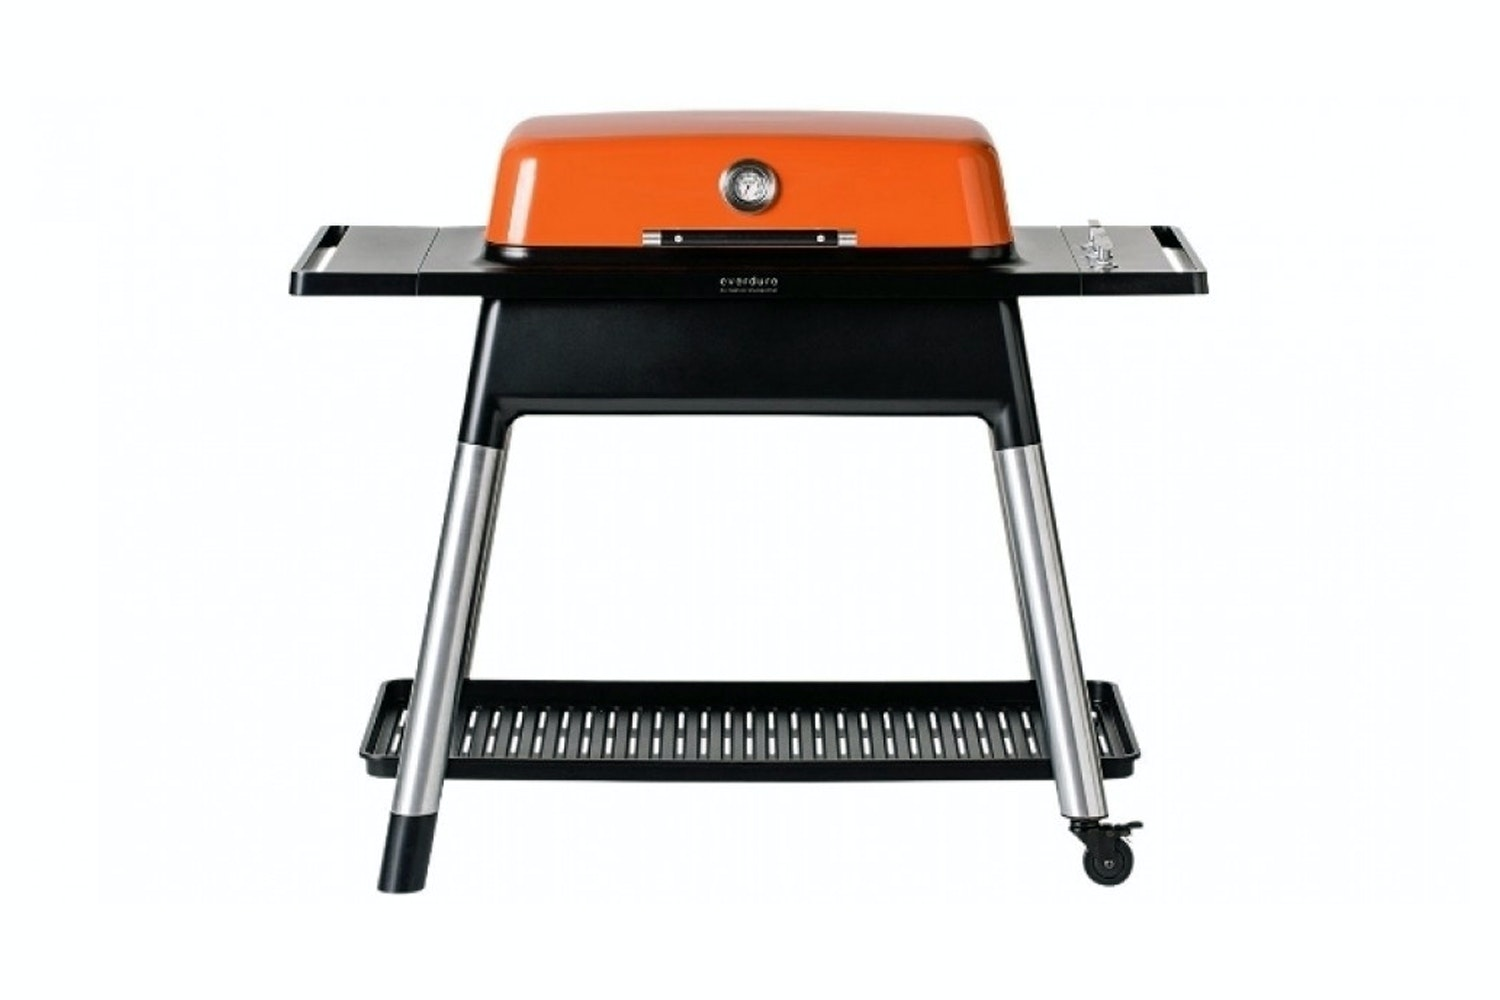 Everdure Furnace 3 Burner Gas Barbeque by Heston Blumenthal - Orange